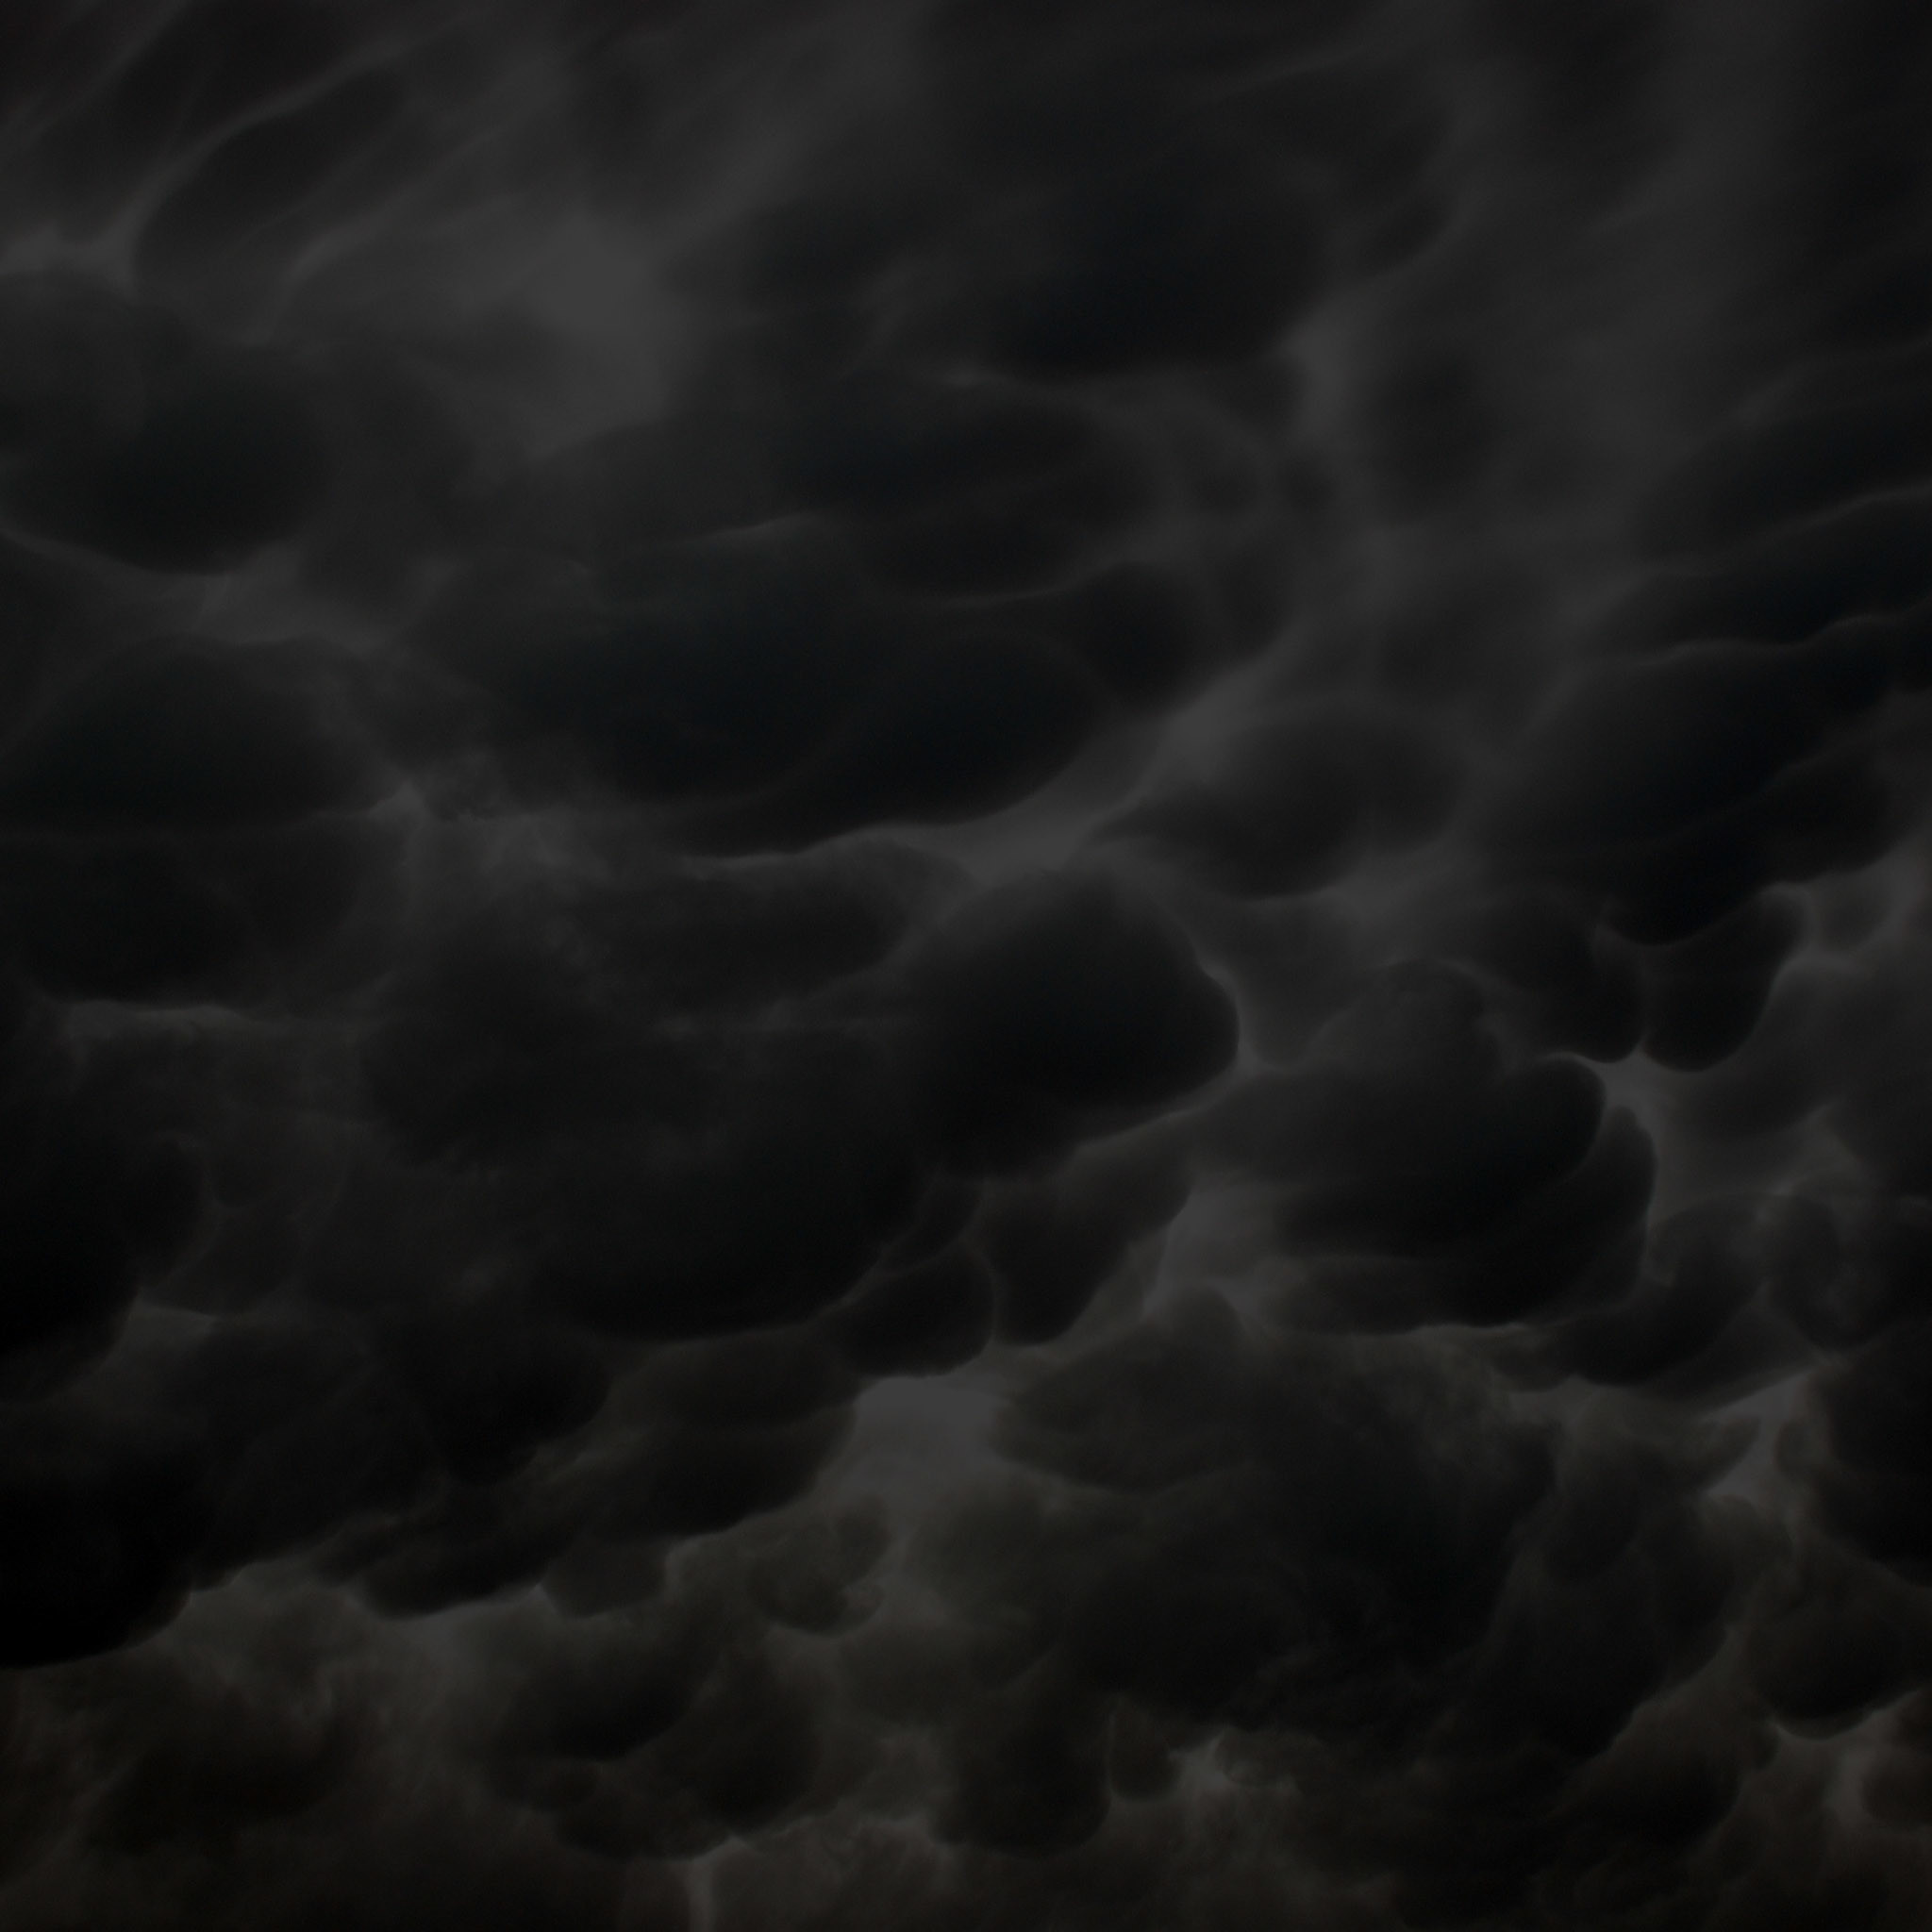 Dark Cloud Wallpaper (64+ Images